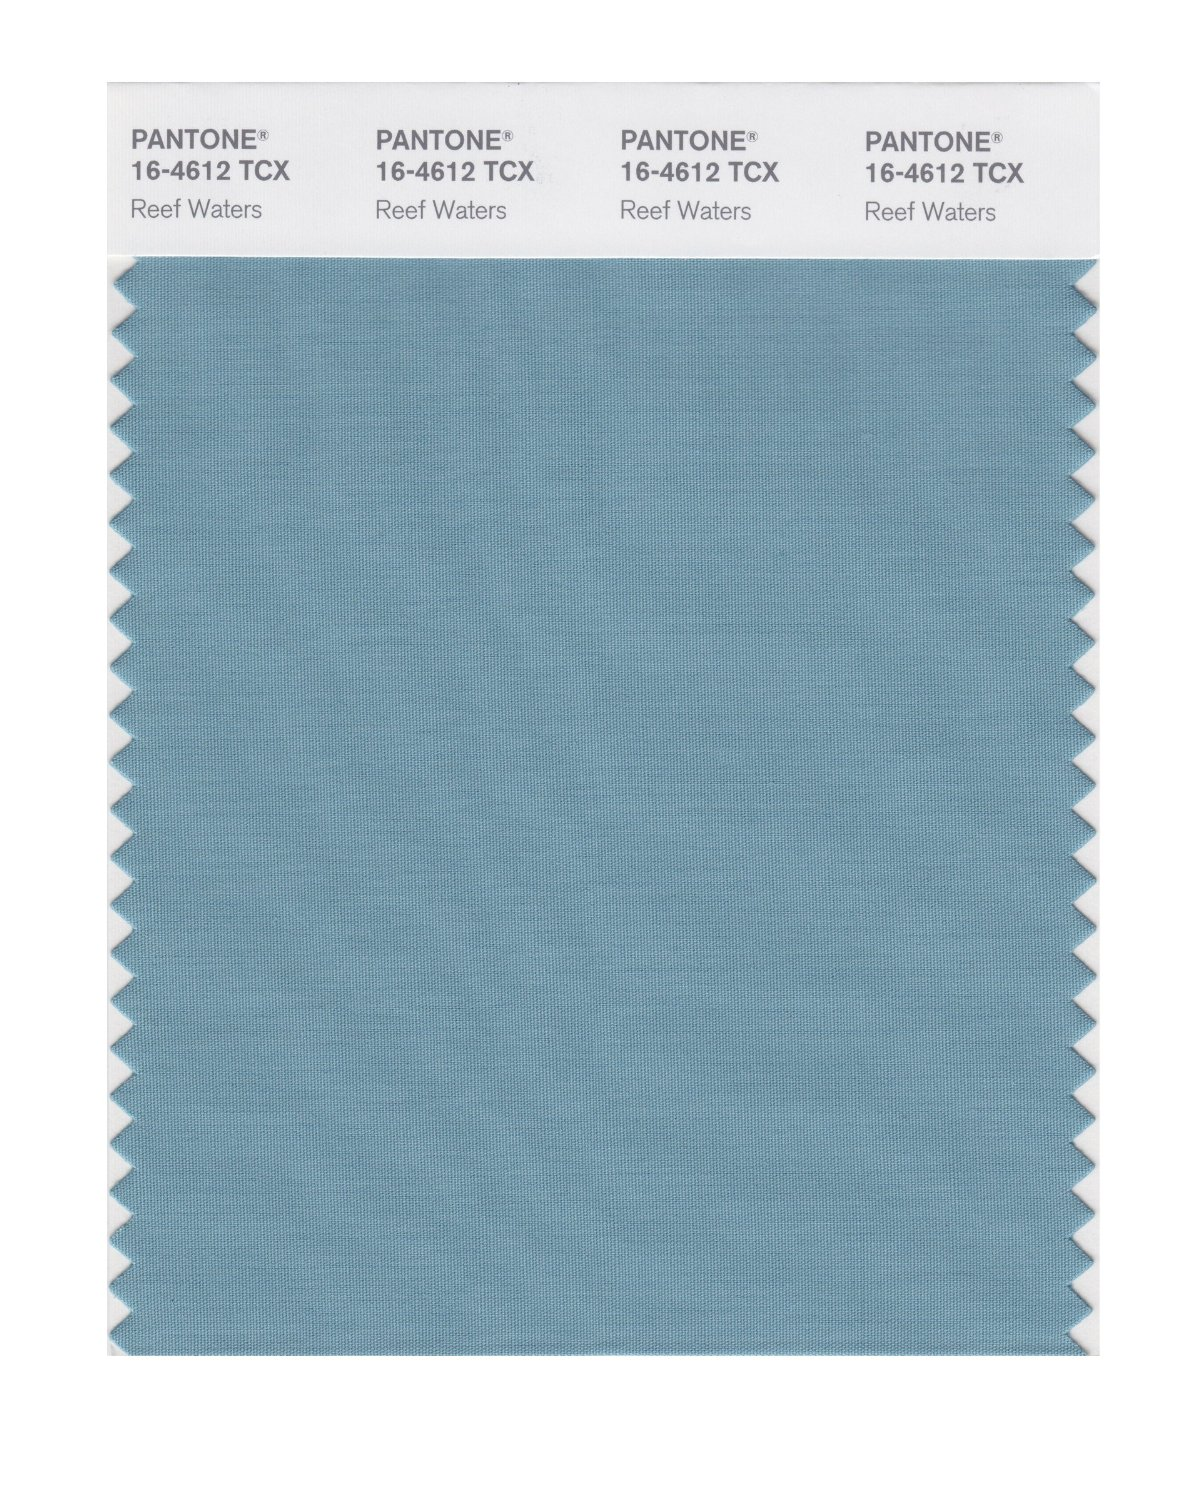 Pantone Smart Swatch 16-4612 Reef Waters